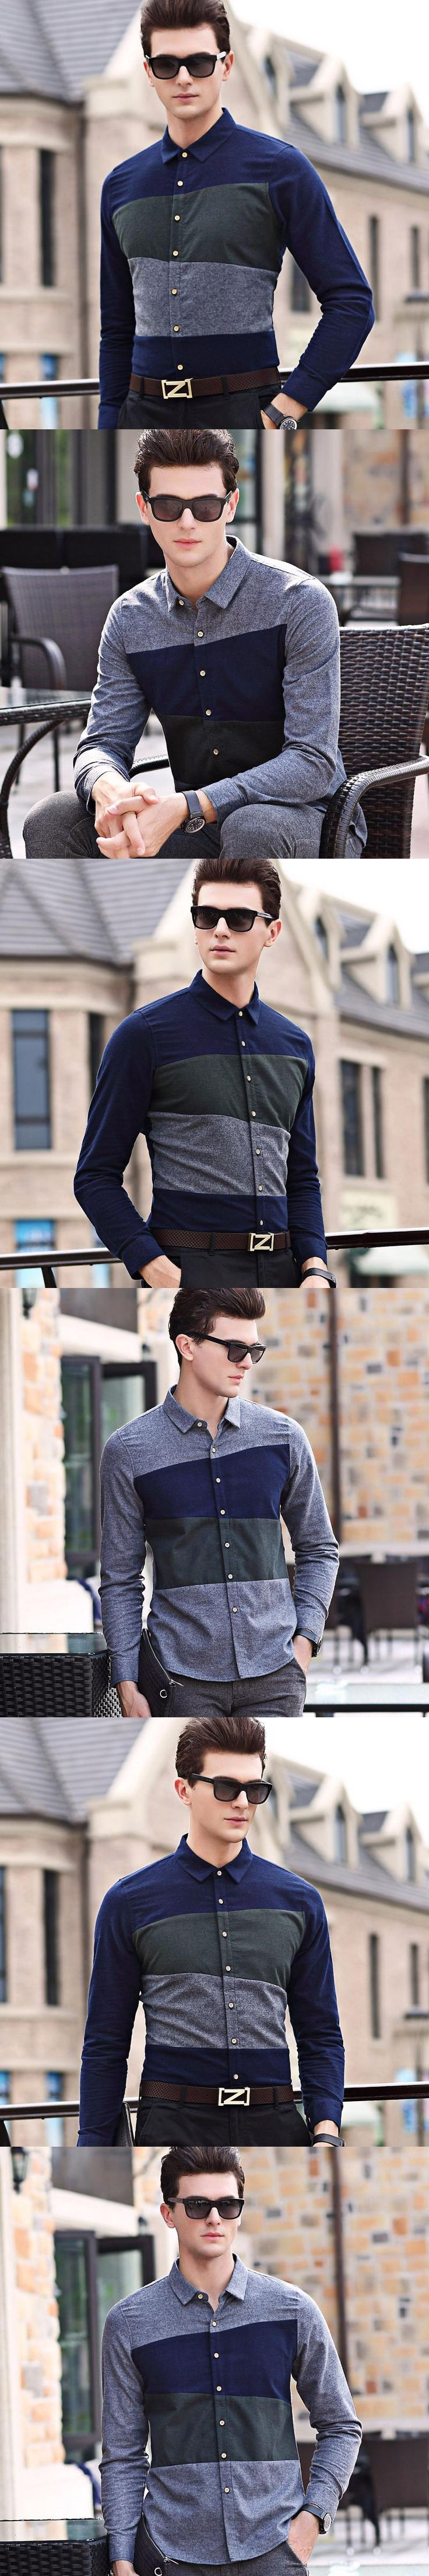 2017 Autumn Spring Men's Fashion Colors Patchwork Long Sleeve Shirts 100% Cotton Formal Dress Shirt Male Casual Striped Shirts